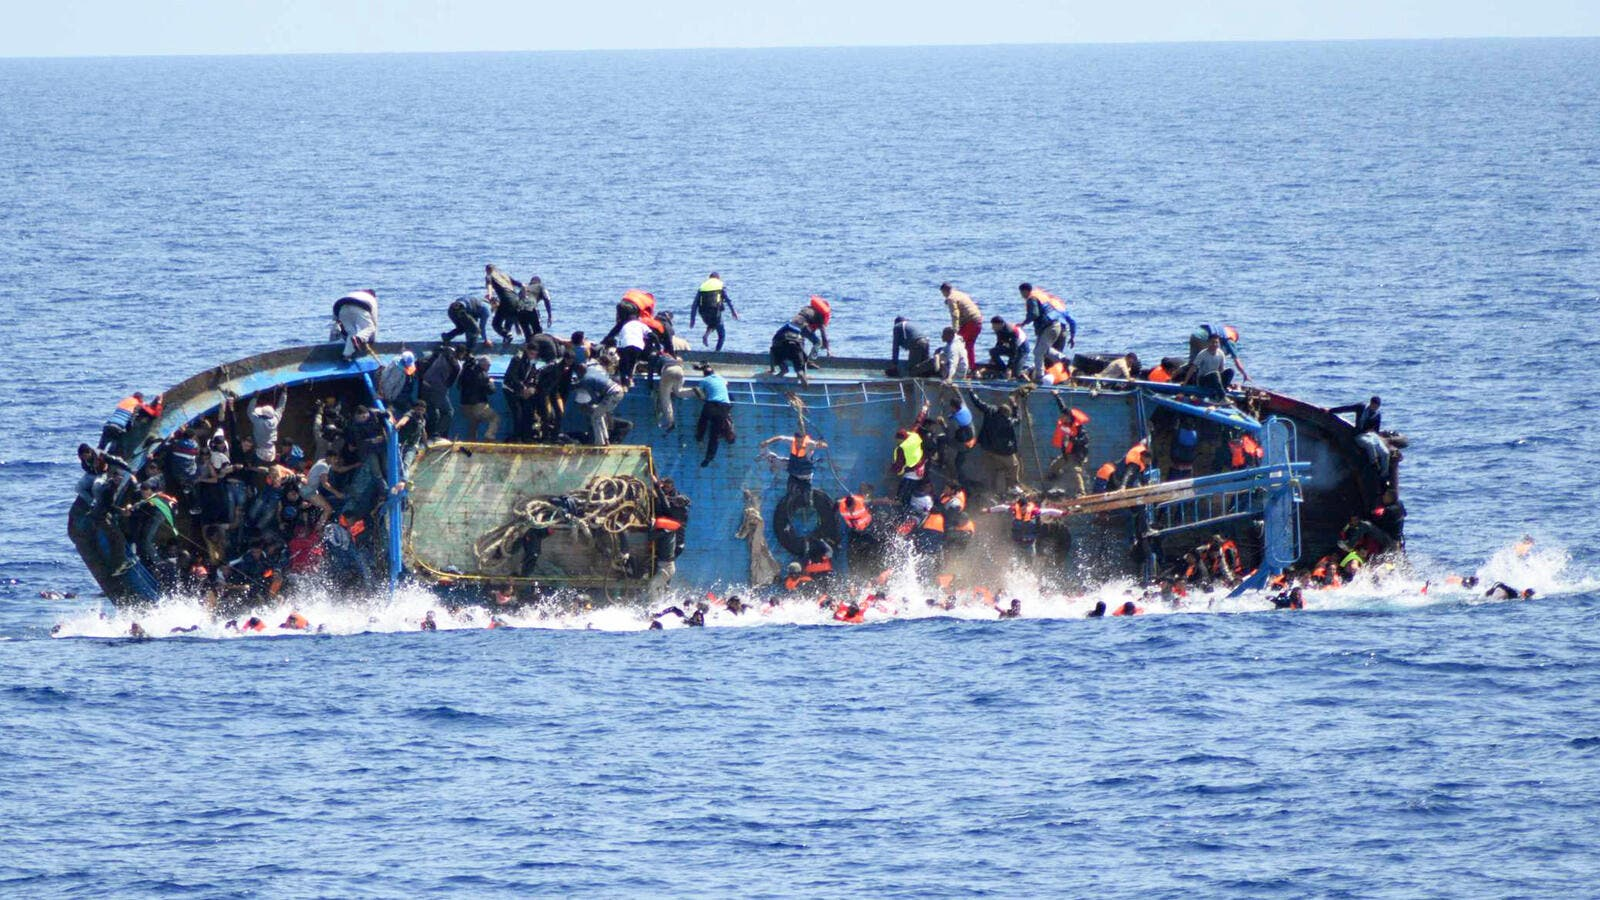 A migrant boat off the Libyan coast (AFP/File Photo)